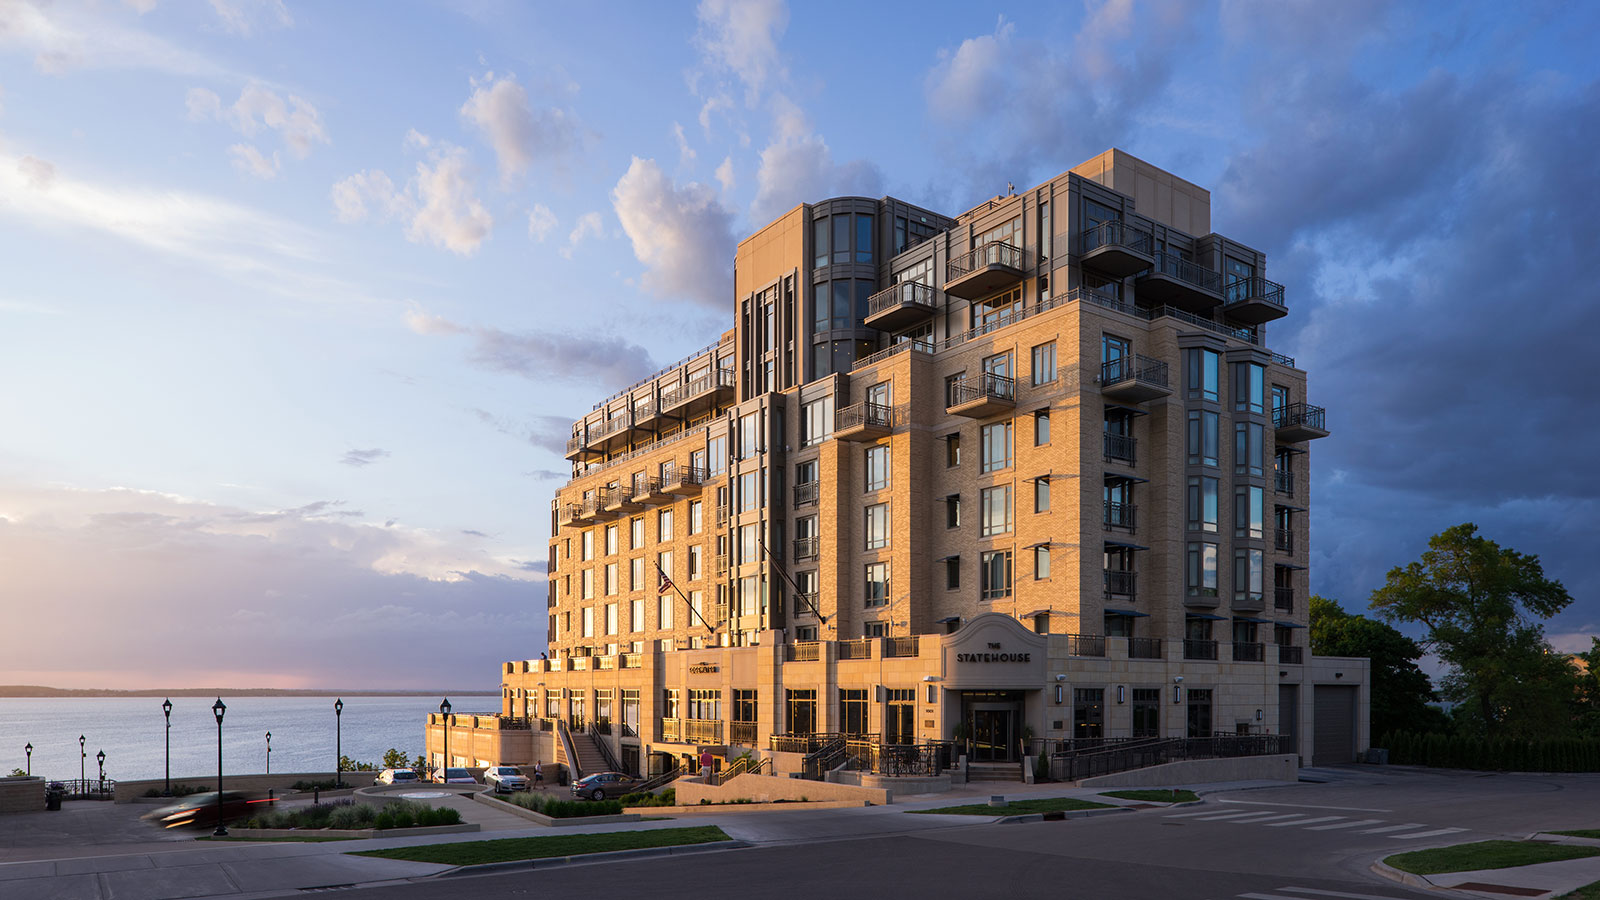 Image of Entrance The Edgewater, 1948, Member of Historic Hotels of America, in Madison, Wisconsin, Overview